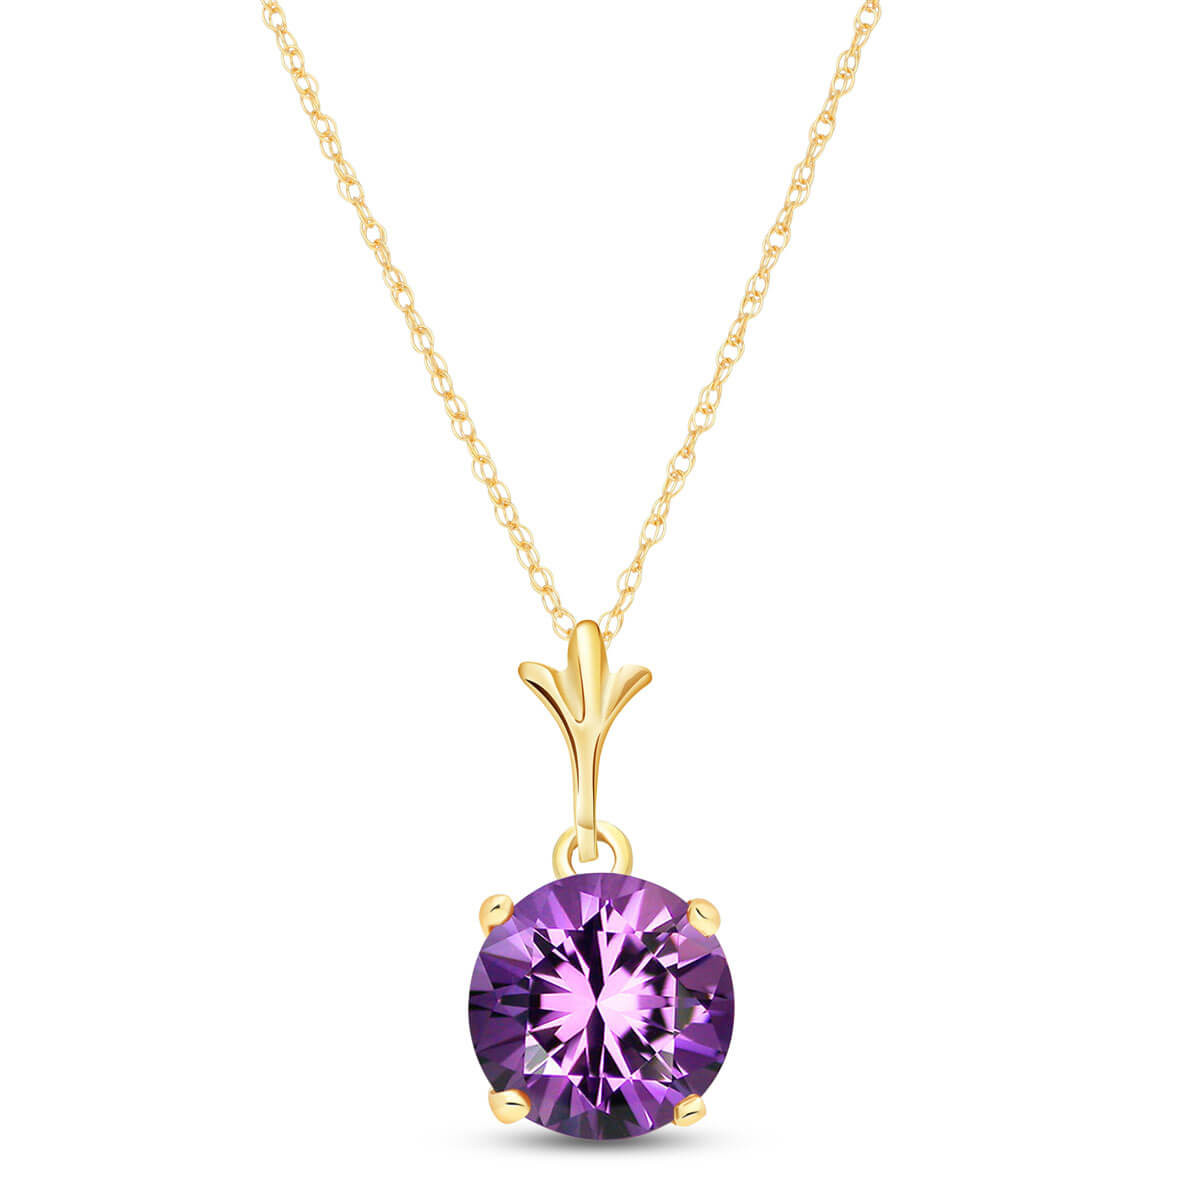 Amethyst Drop Pendant Necklace 1.15 ct in 9ct Gold